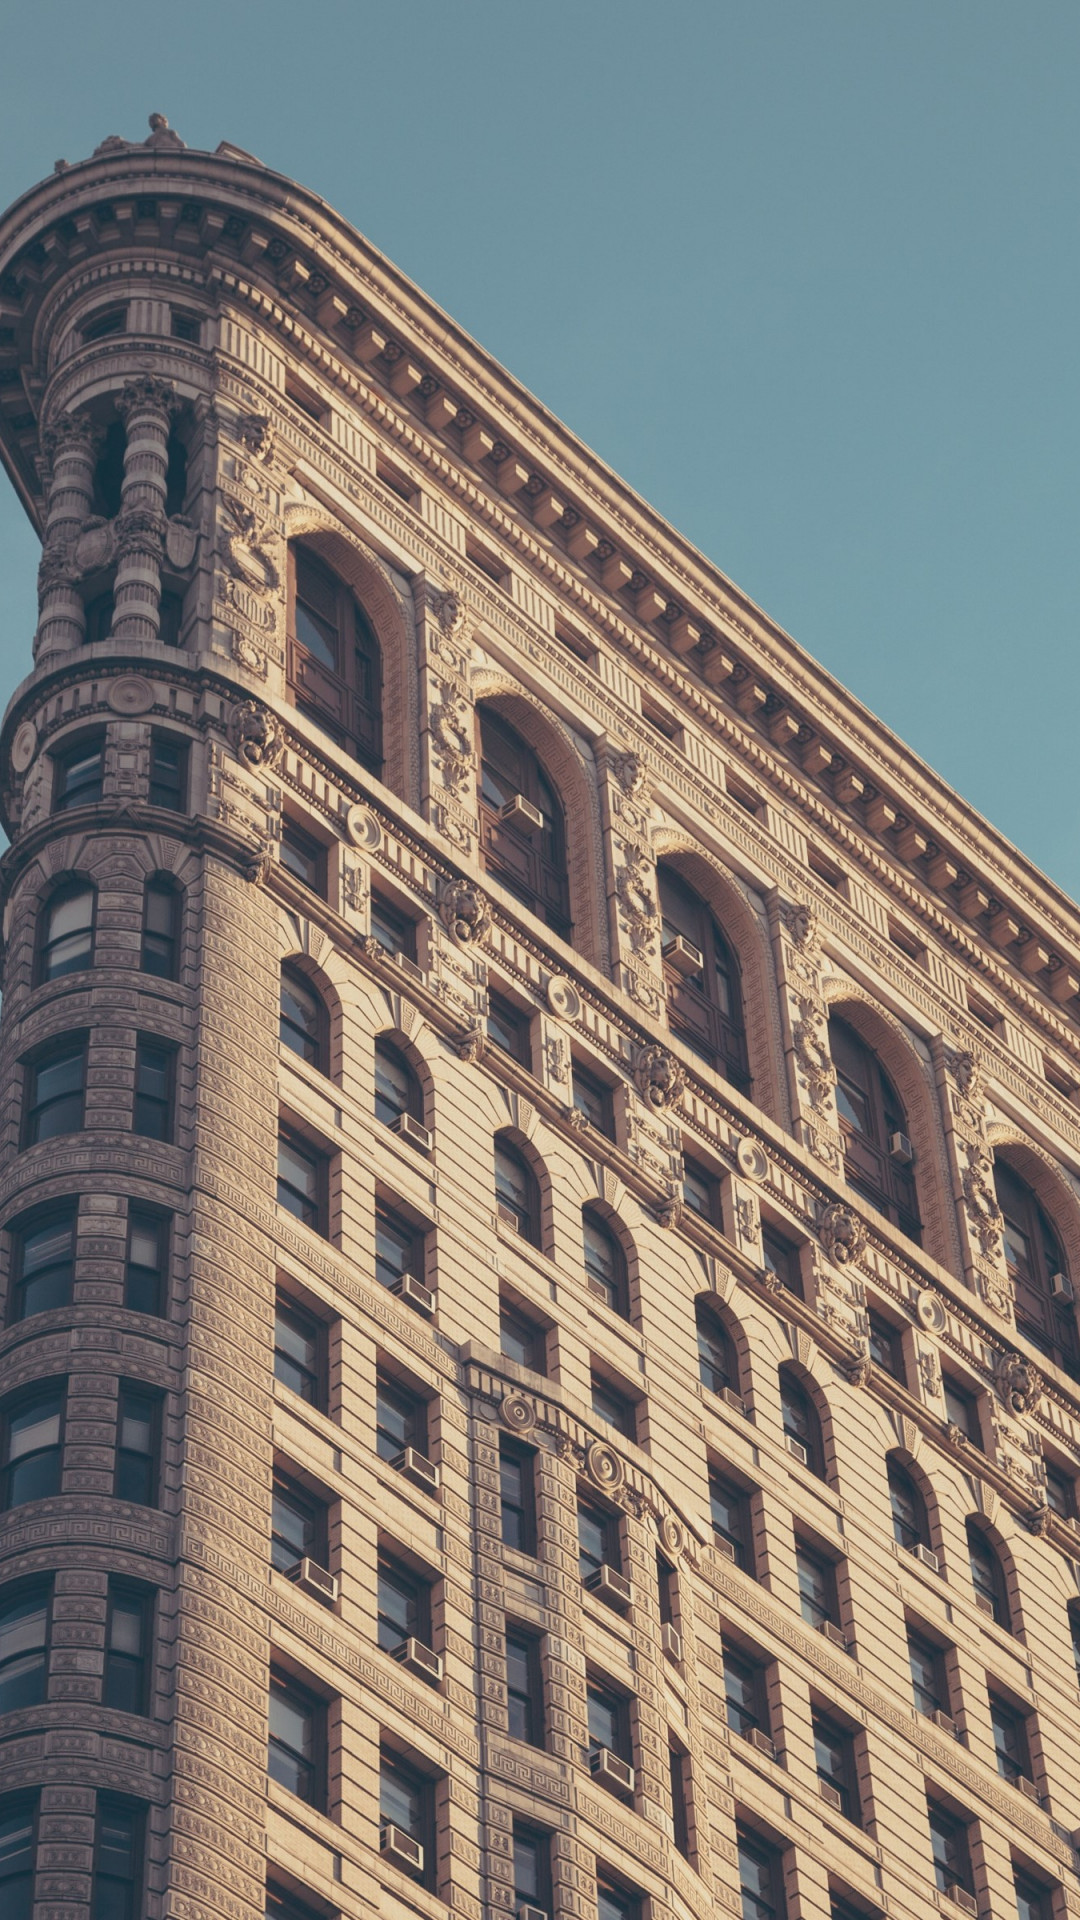 Flatiron building in New York wallpaper 1080x1920